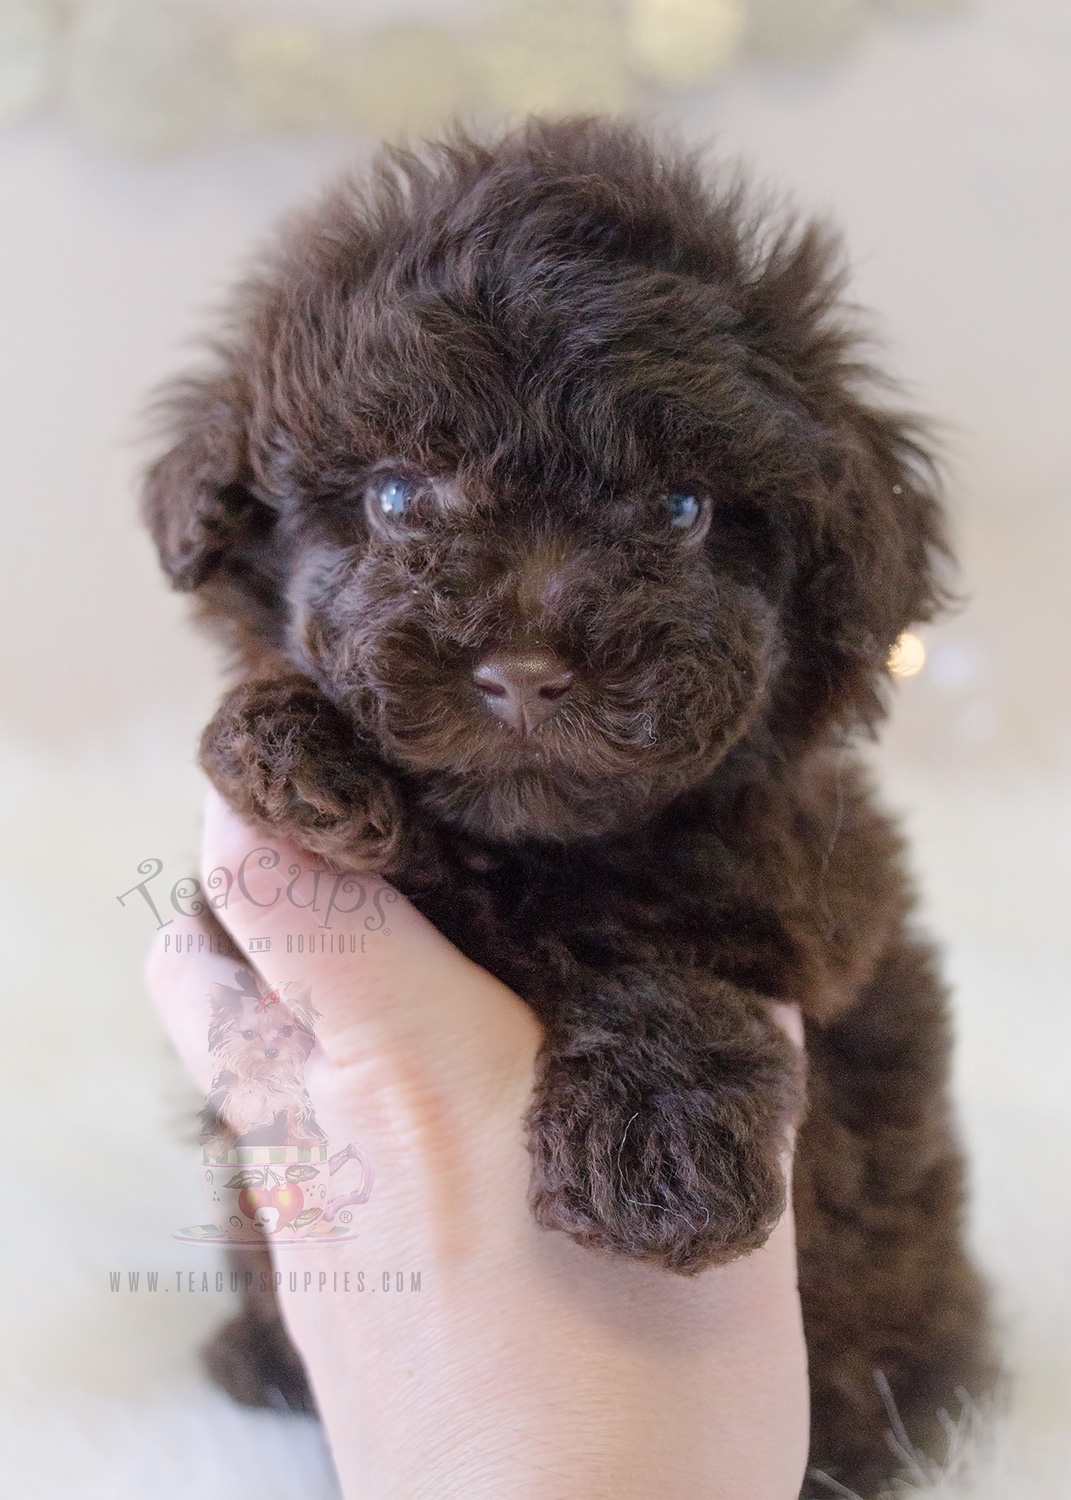 Chocolate Toy Poodle Puppy – Wow Blog